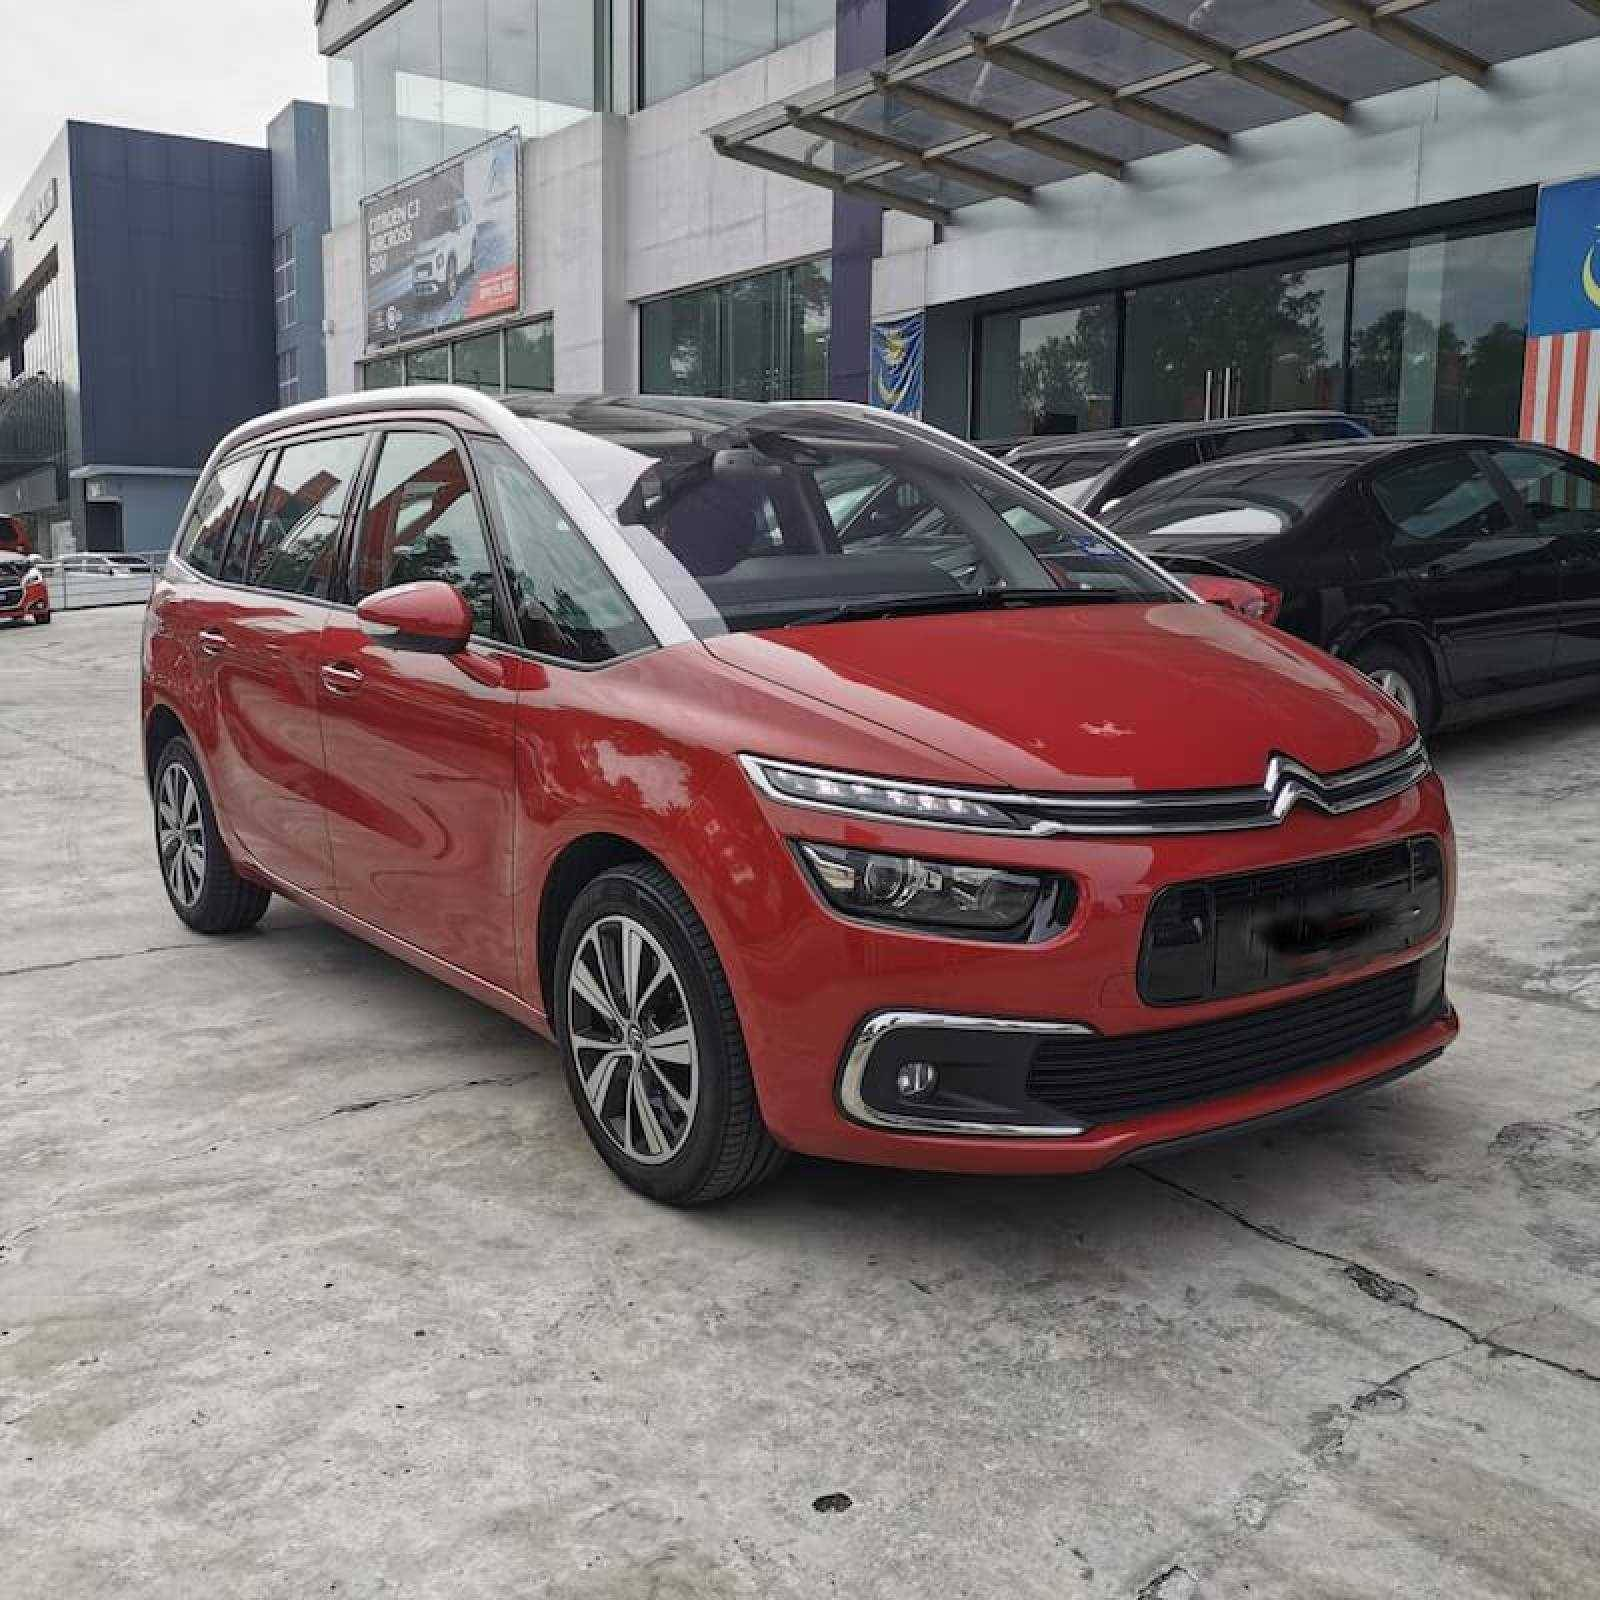 2019 Citroën Grand C4 SpaceTourer MPV